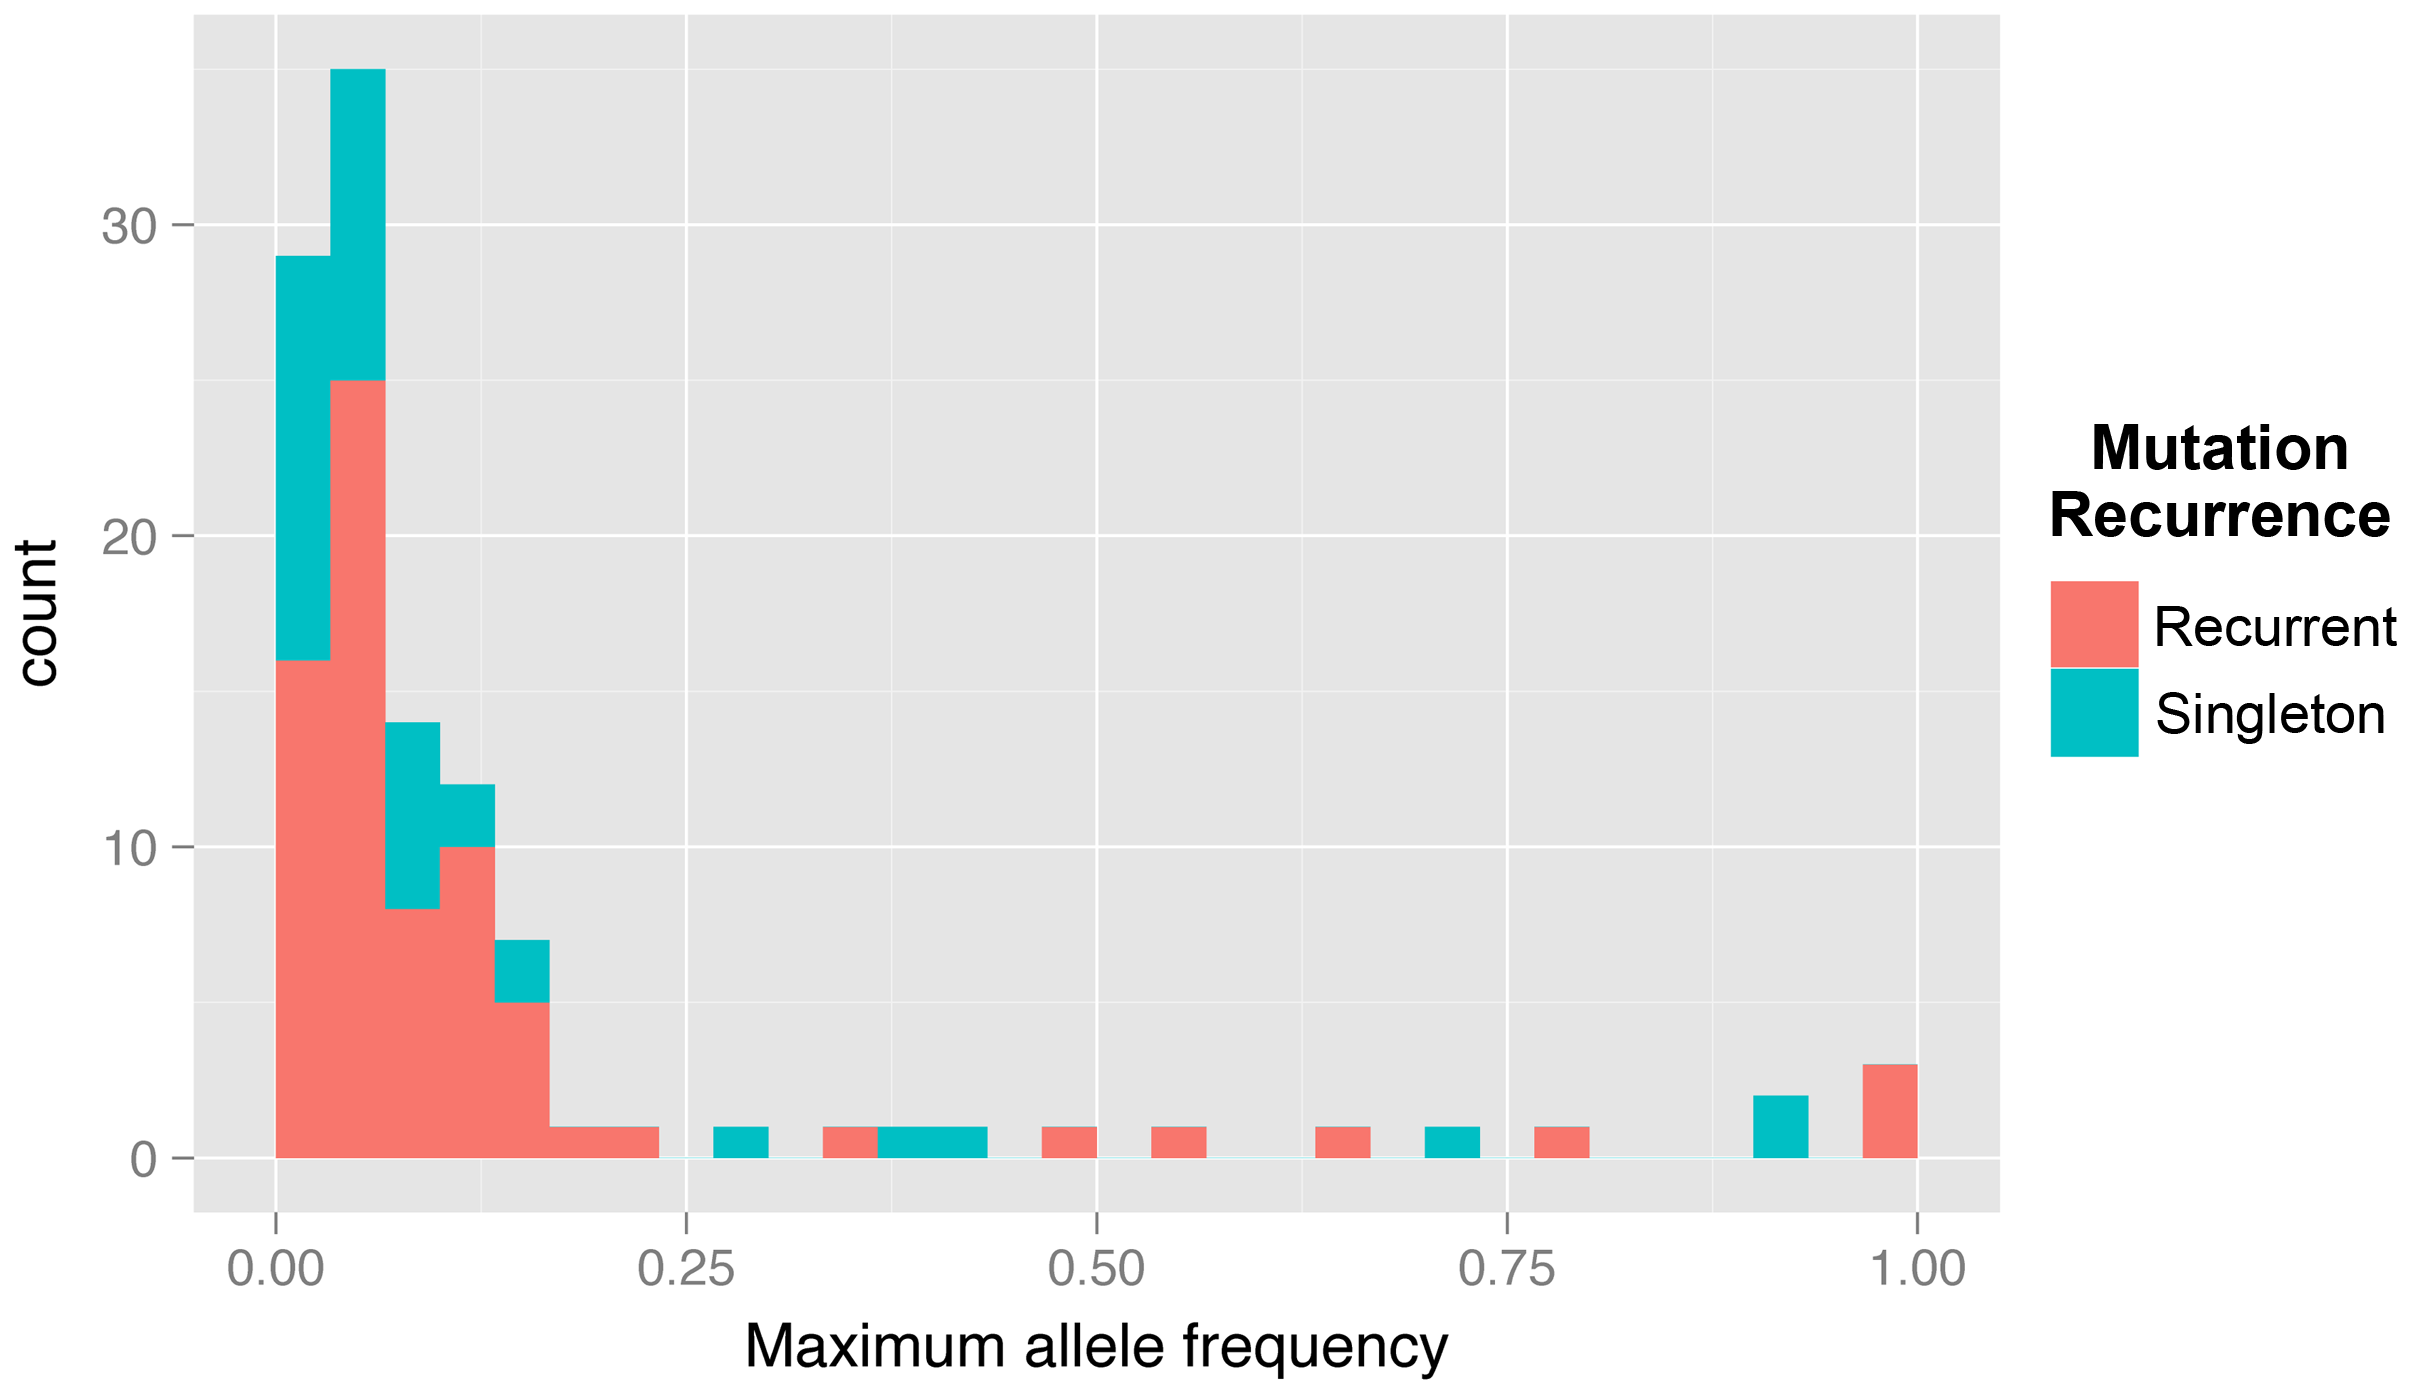 Histogram of maximum allele frequencies reached of all mutations discovered across the three experiments.